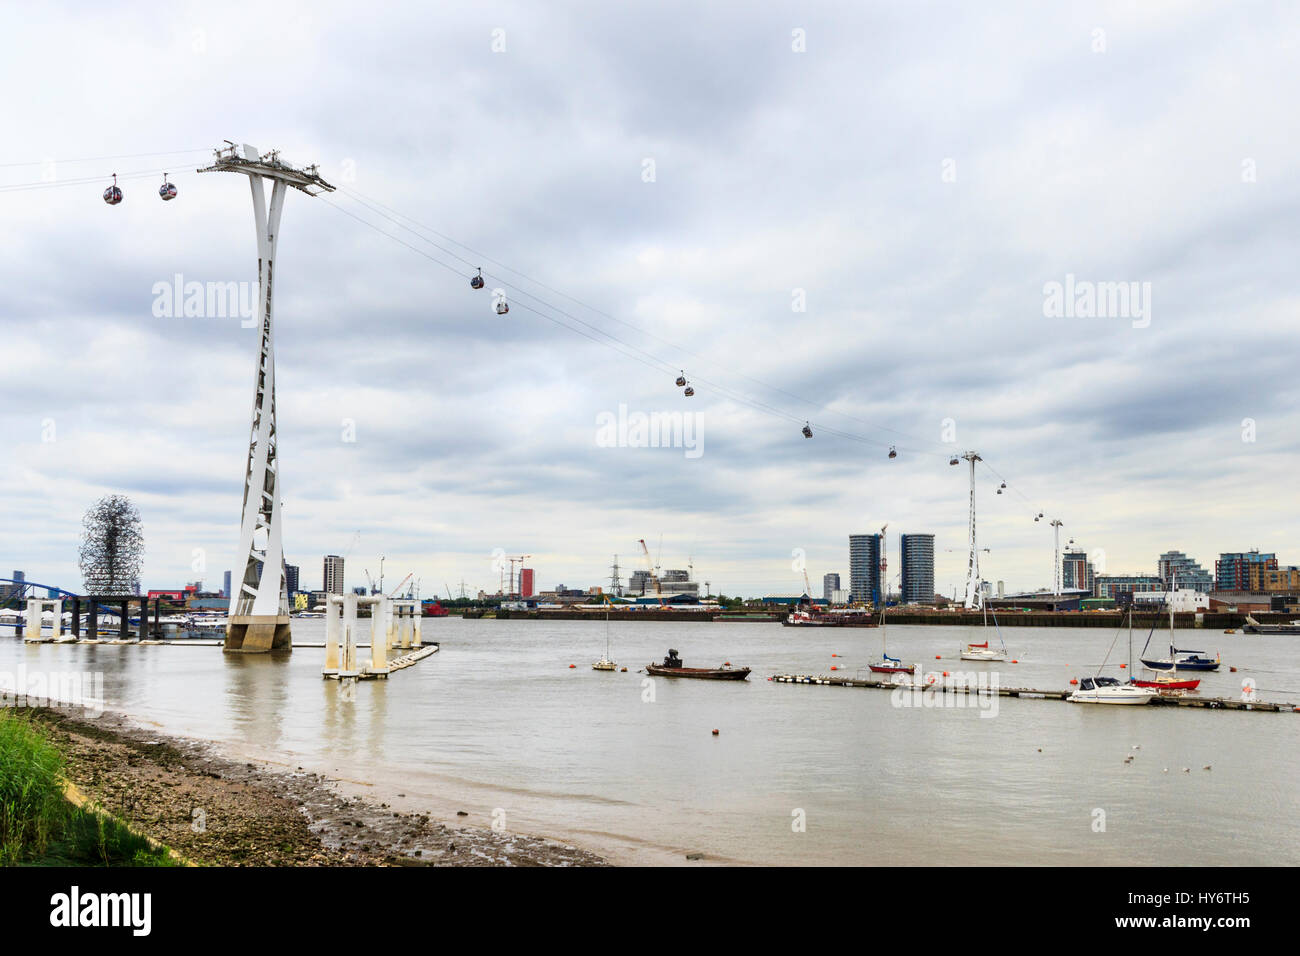 The Emirates Cable Car service, spanning the River Thames from Greenwich Peninsula to the Royal Victoria Dock, London, Stock Photo